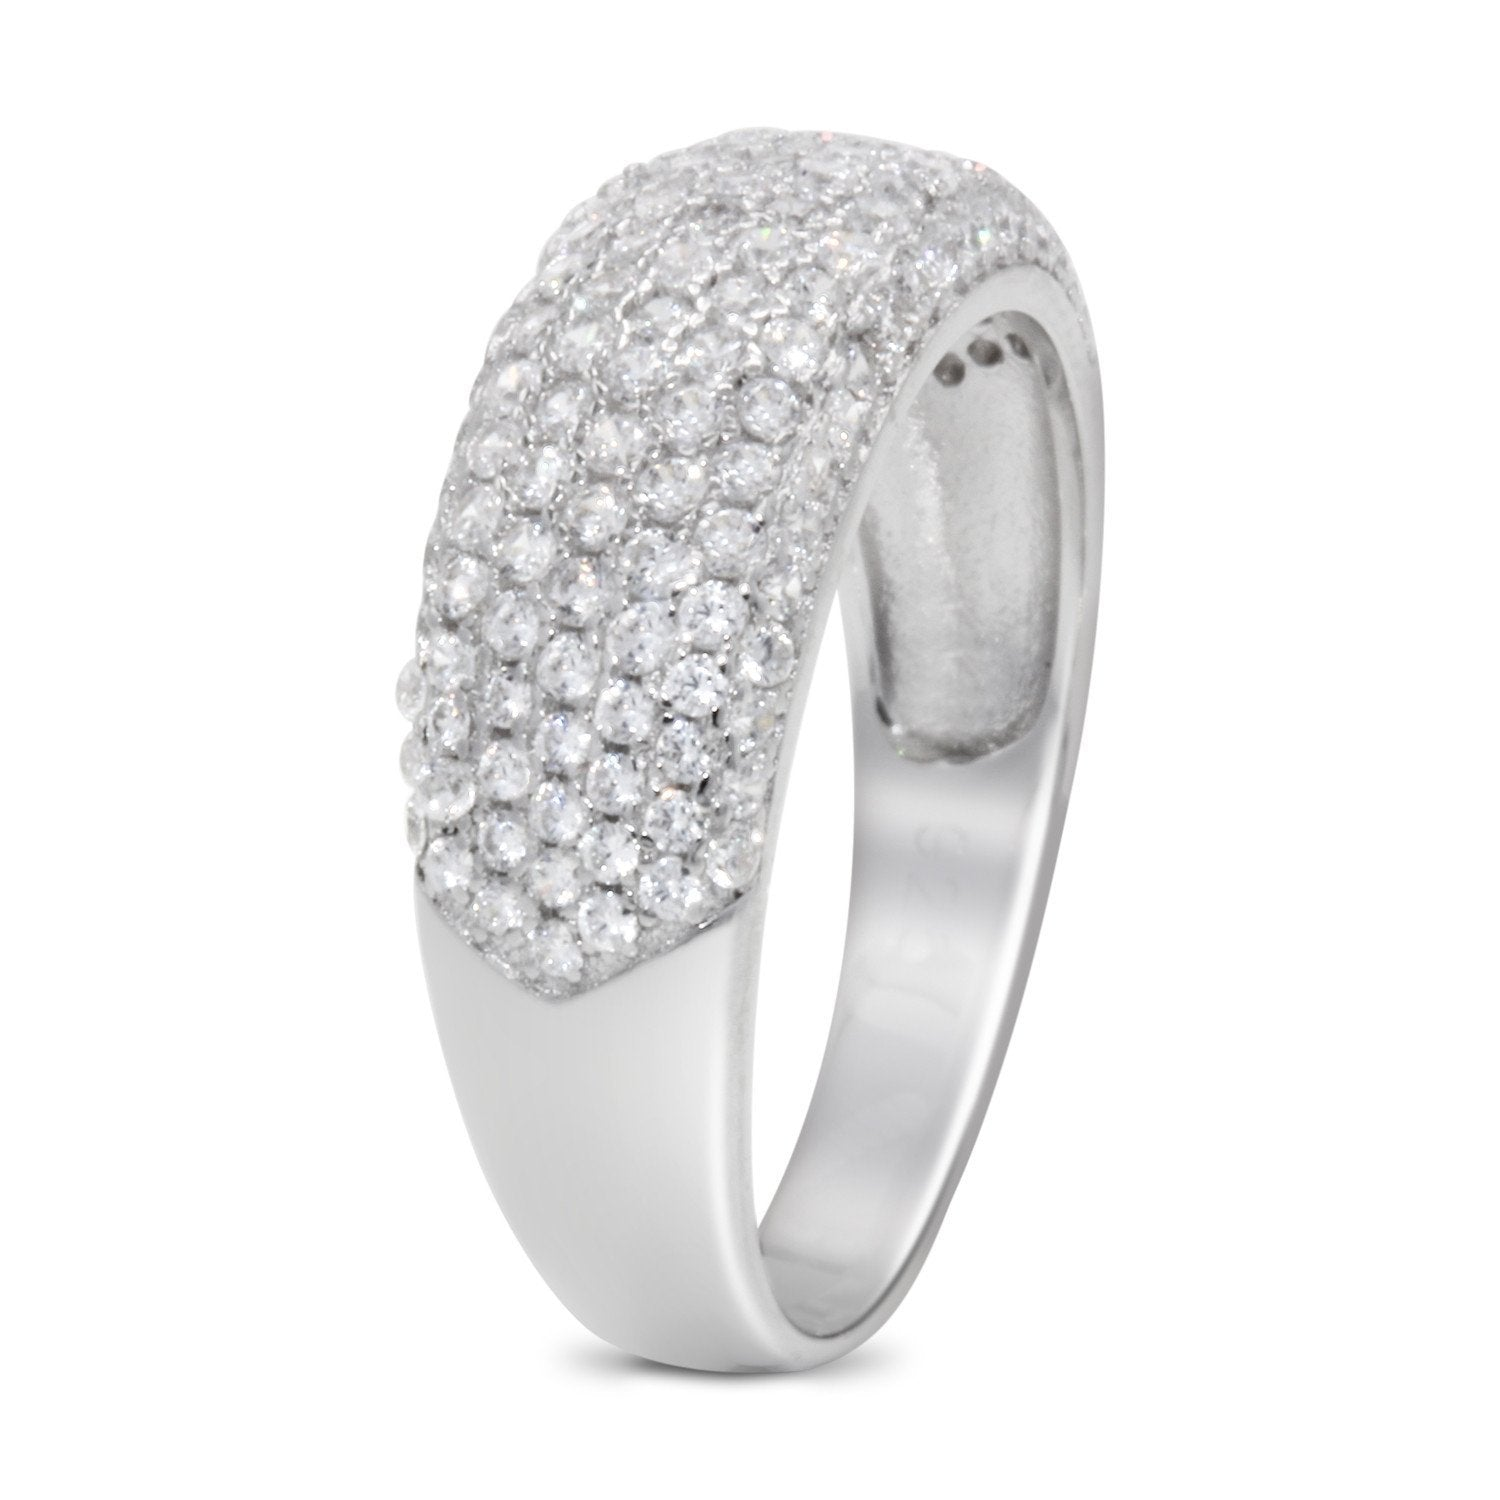 CZ 5mm Sterling Silver Plated Diamond Stimulant Band Engagement Ring